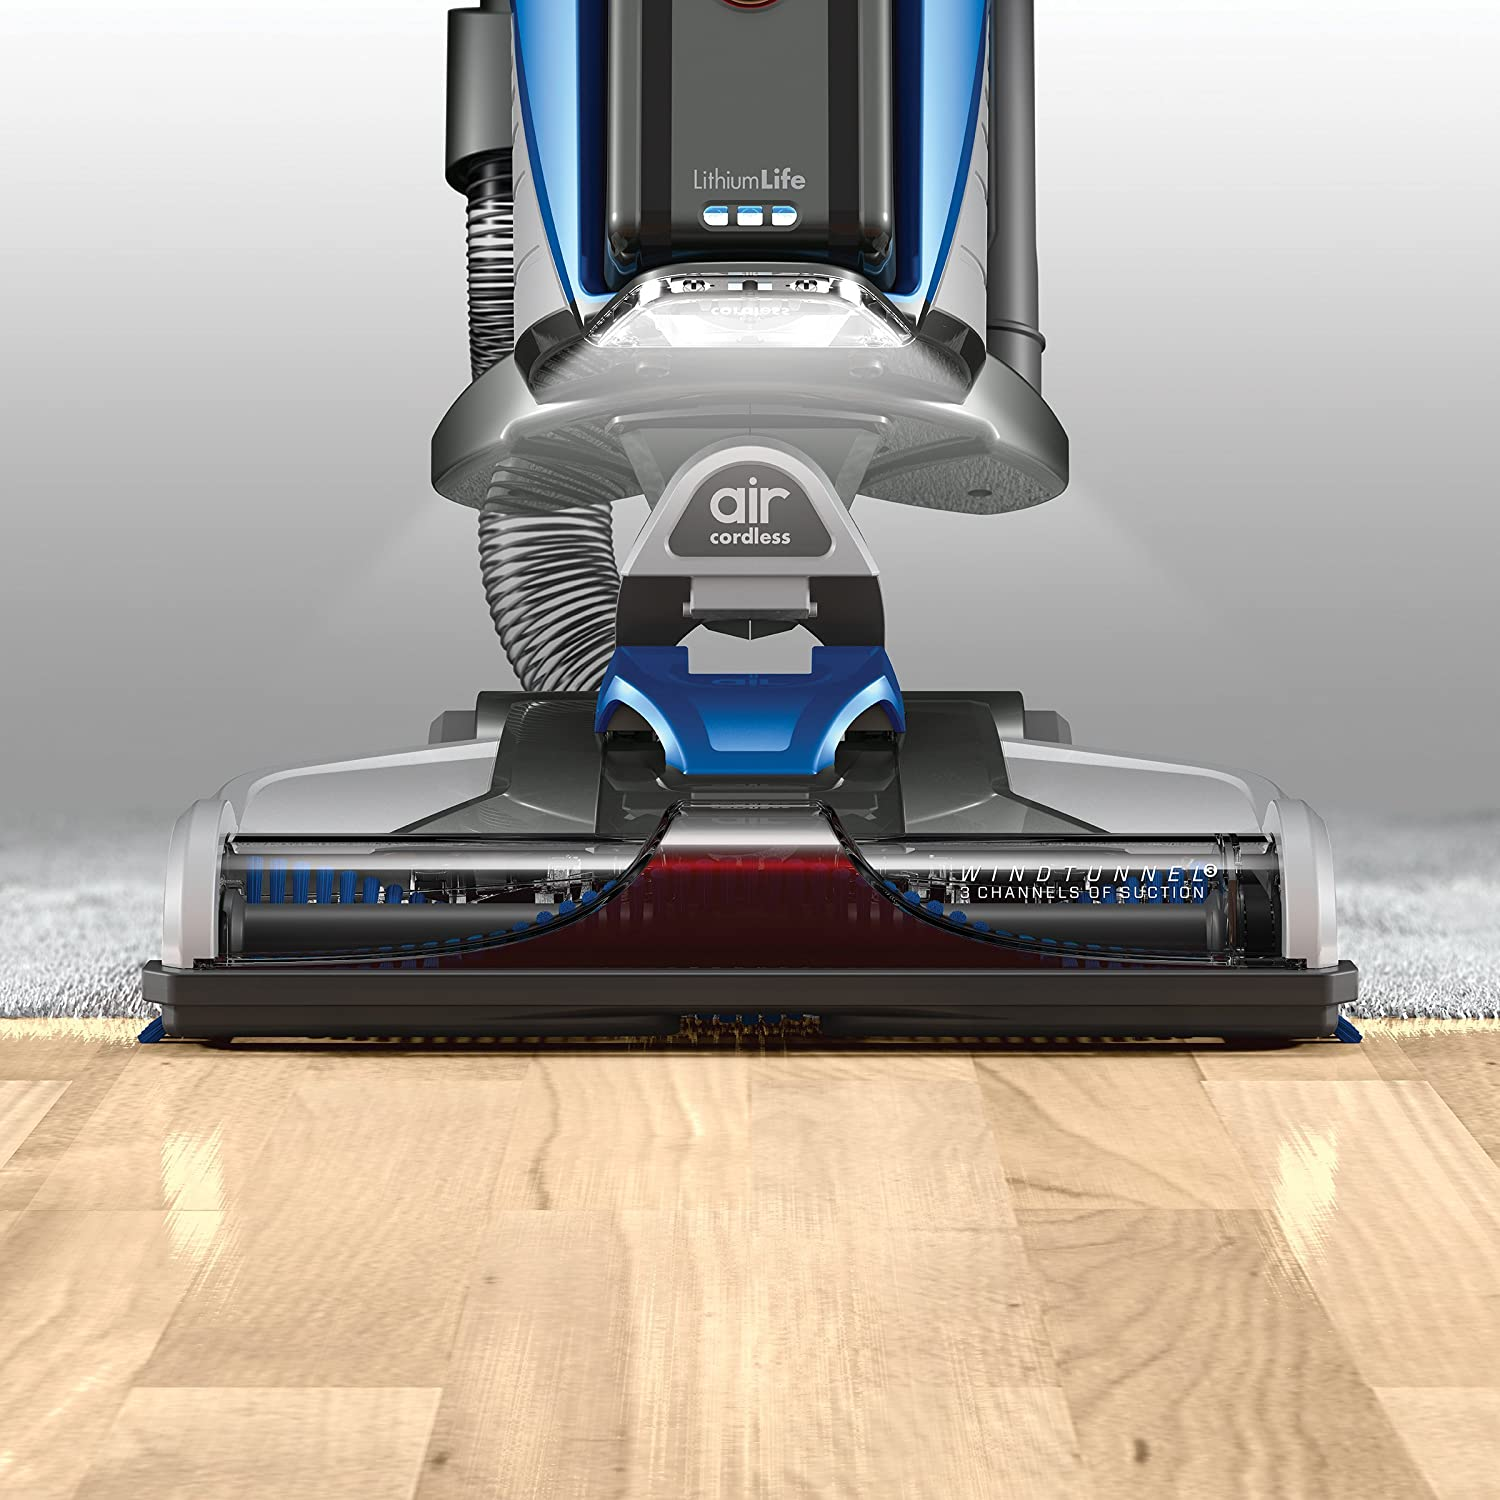 Hoover Air Cordless Lift Bagless Upright Vacuum, BH51120PC Review